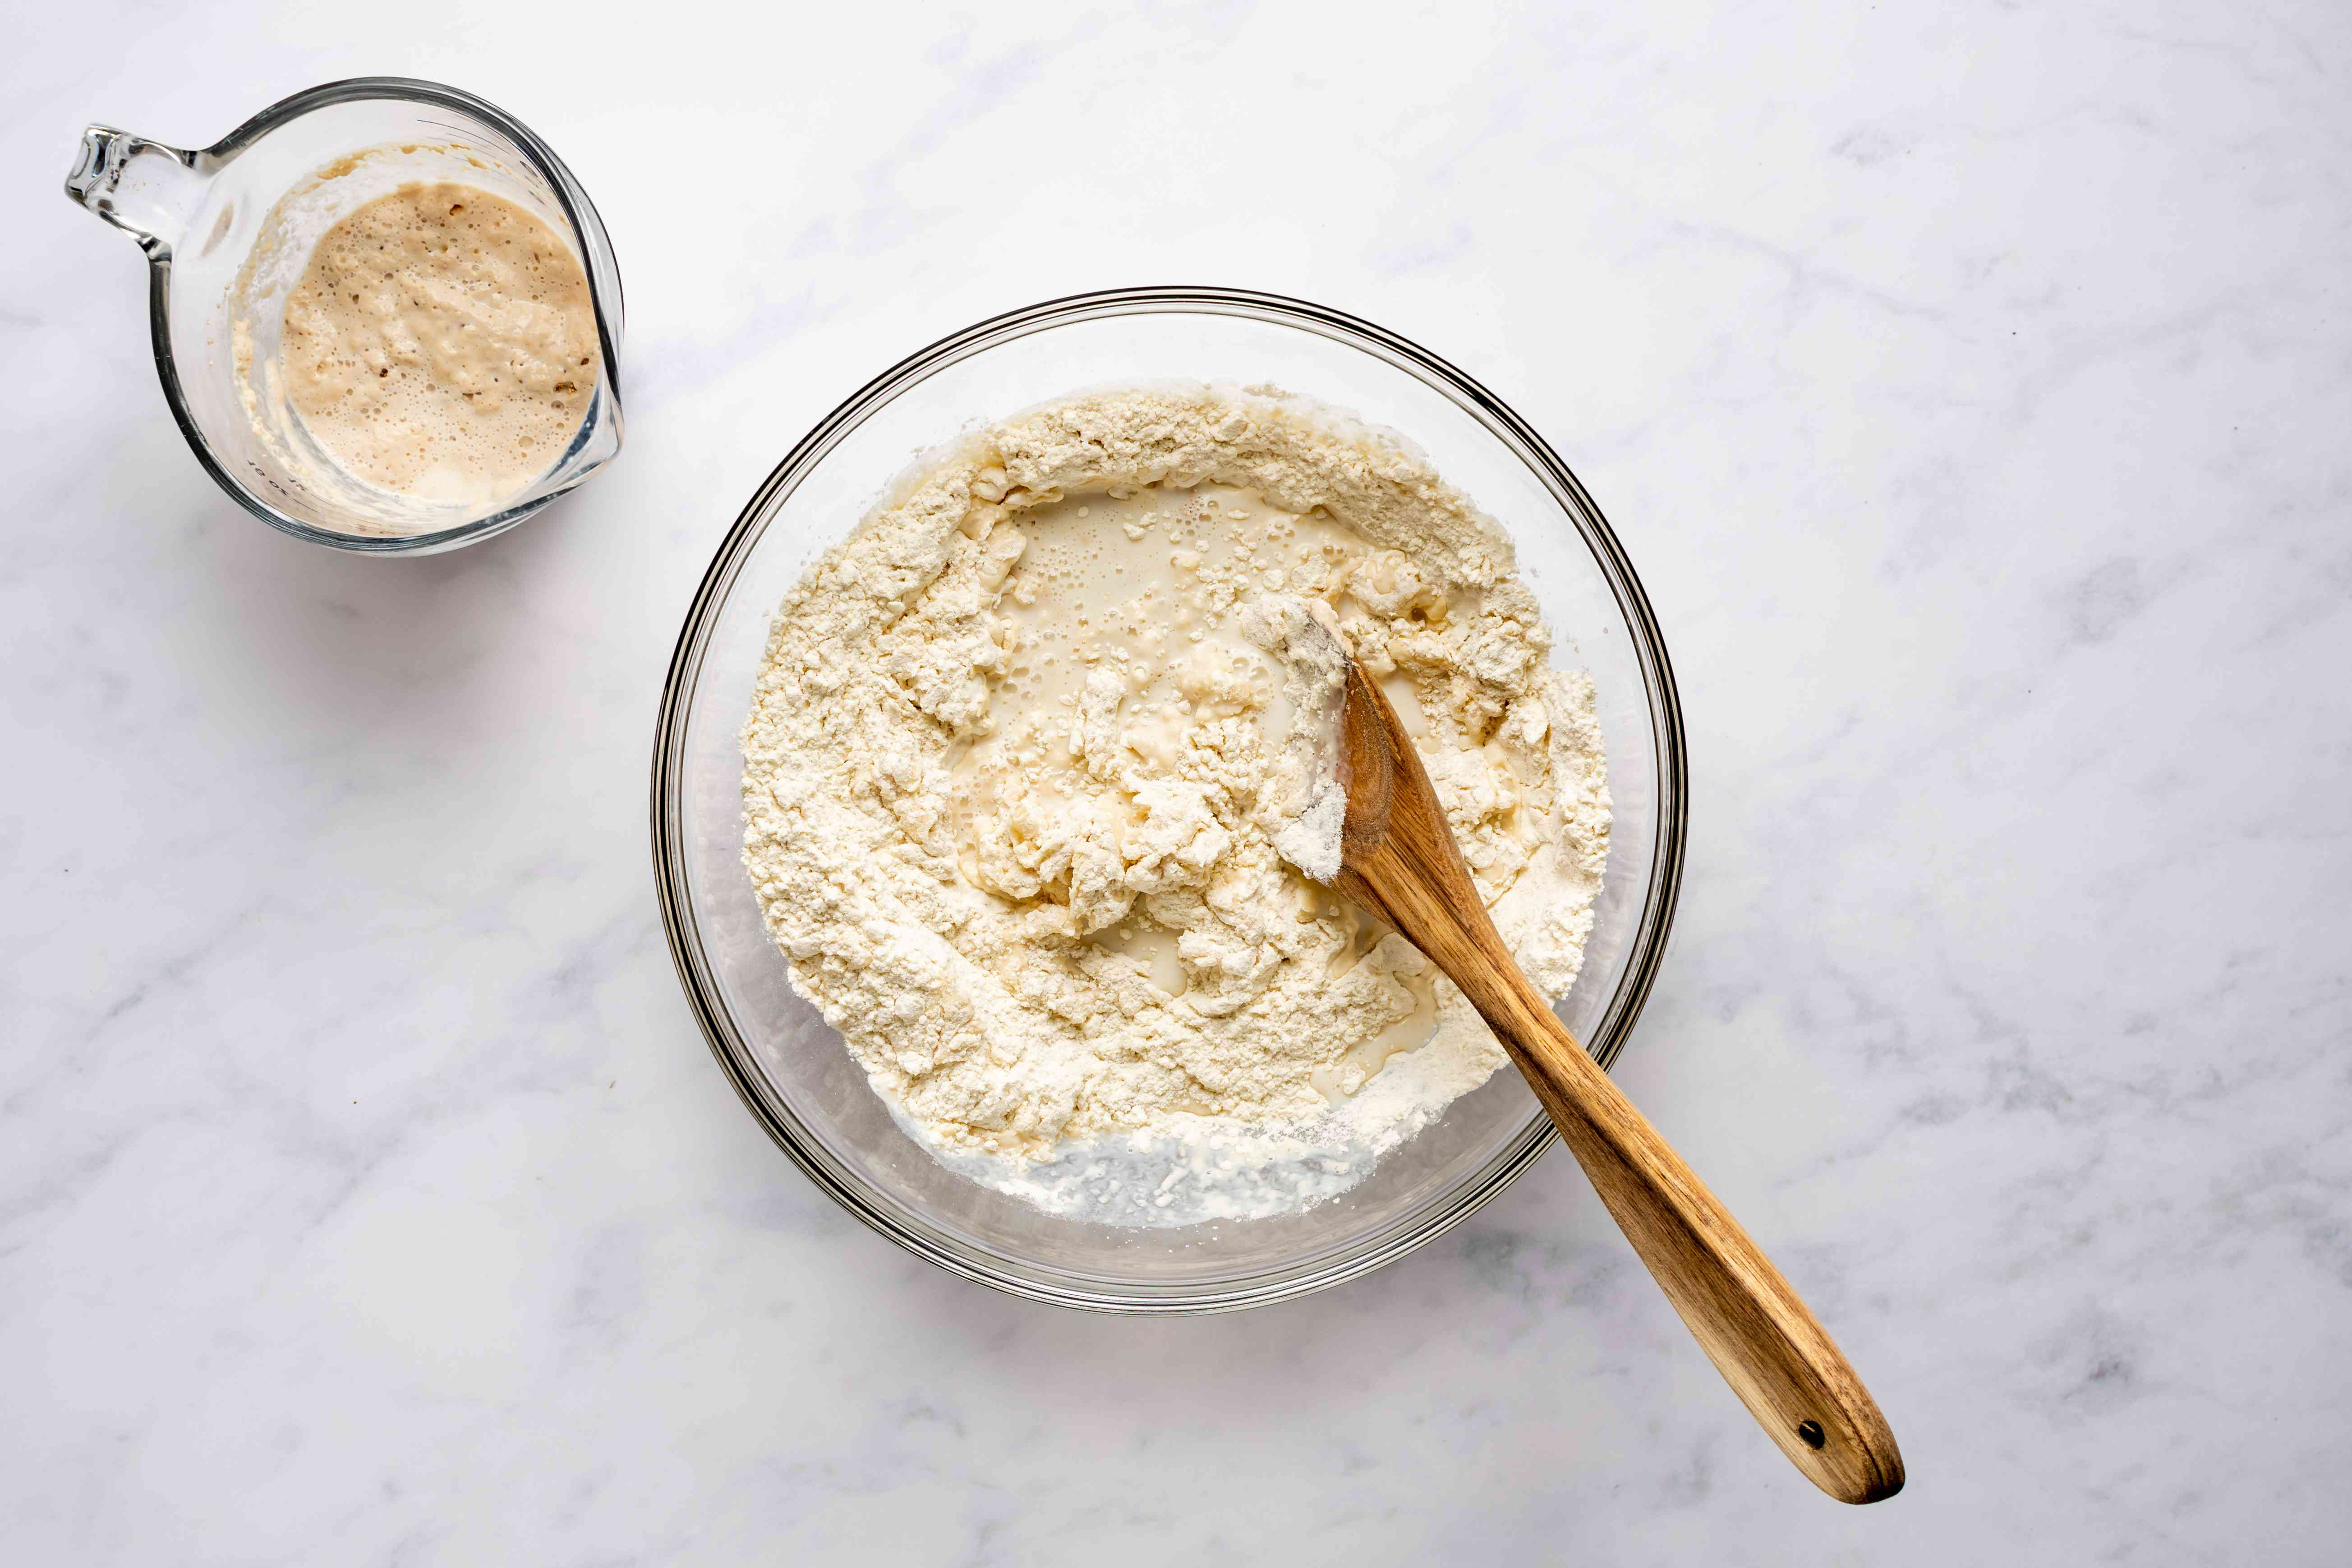 Gradually pour in the milk-yeast mixture into the flour